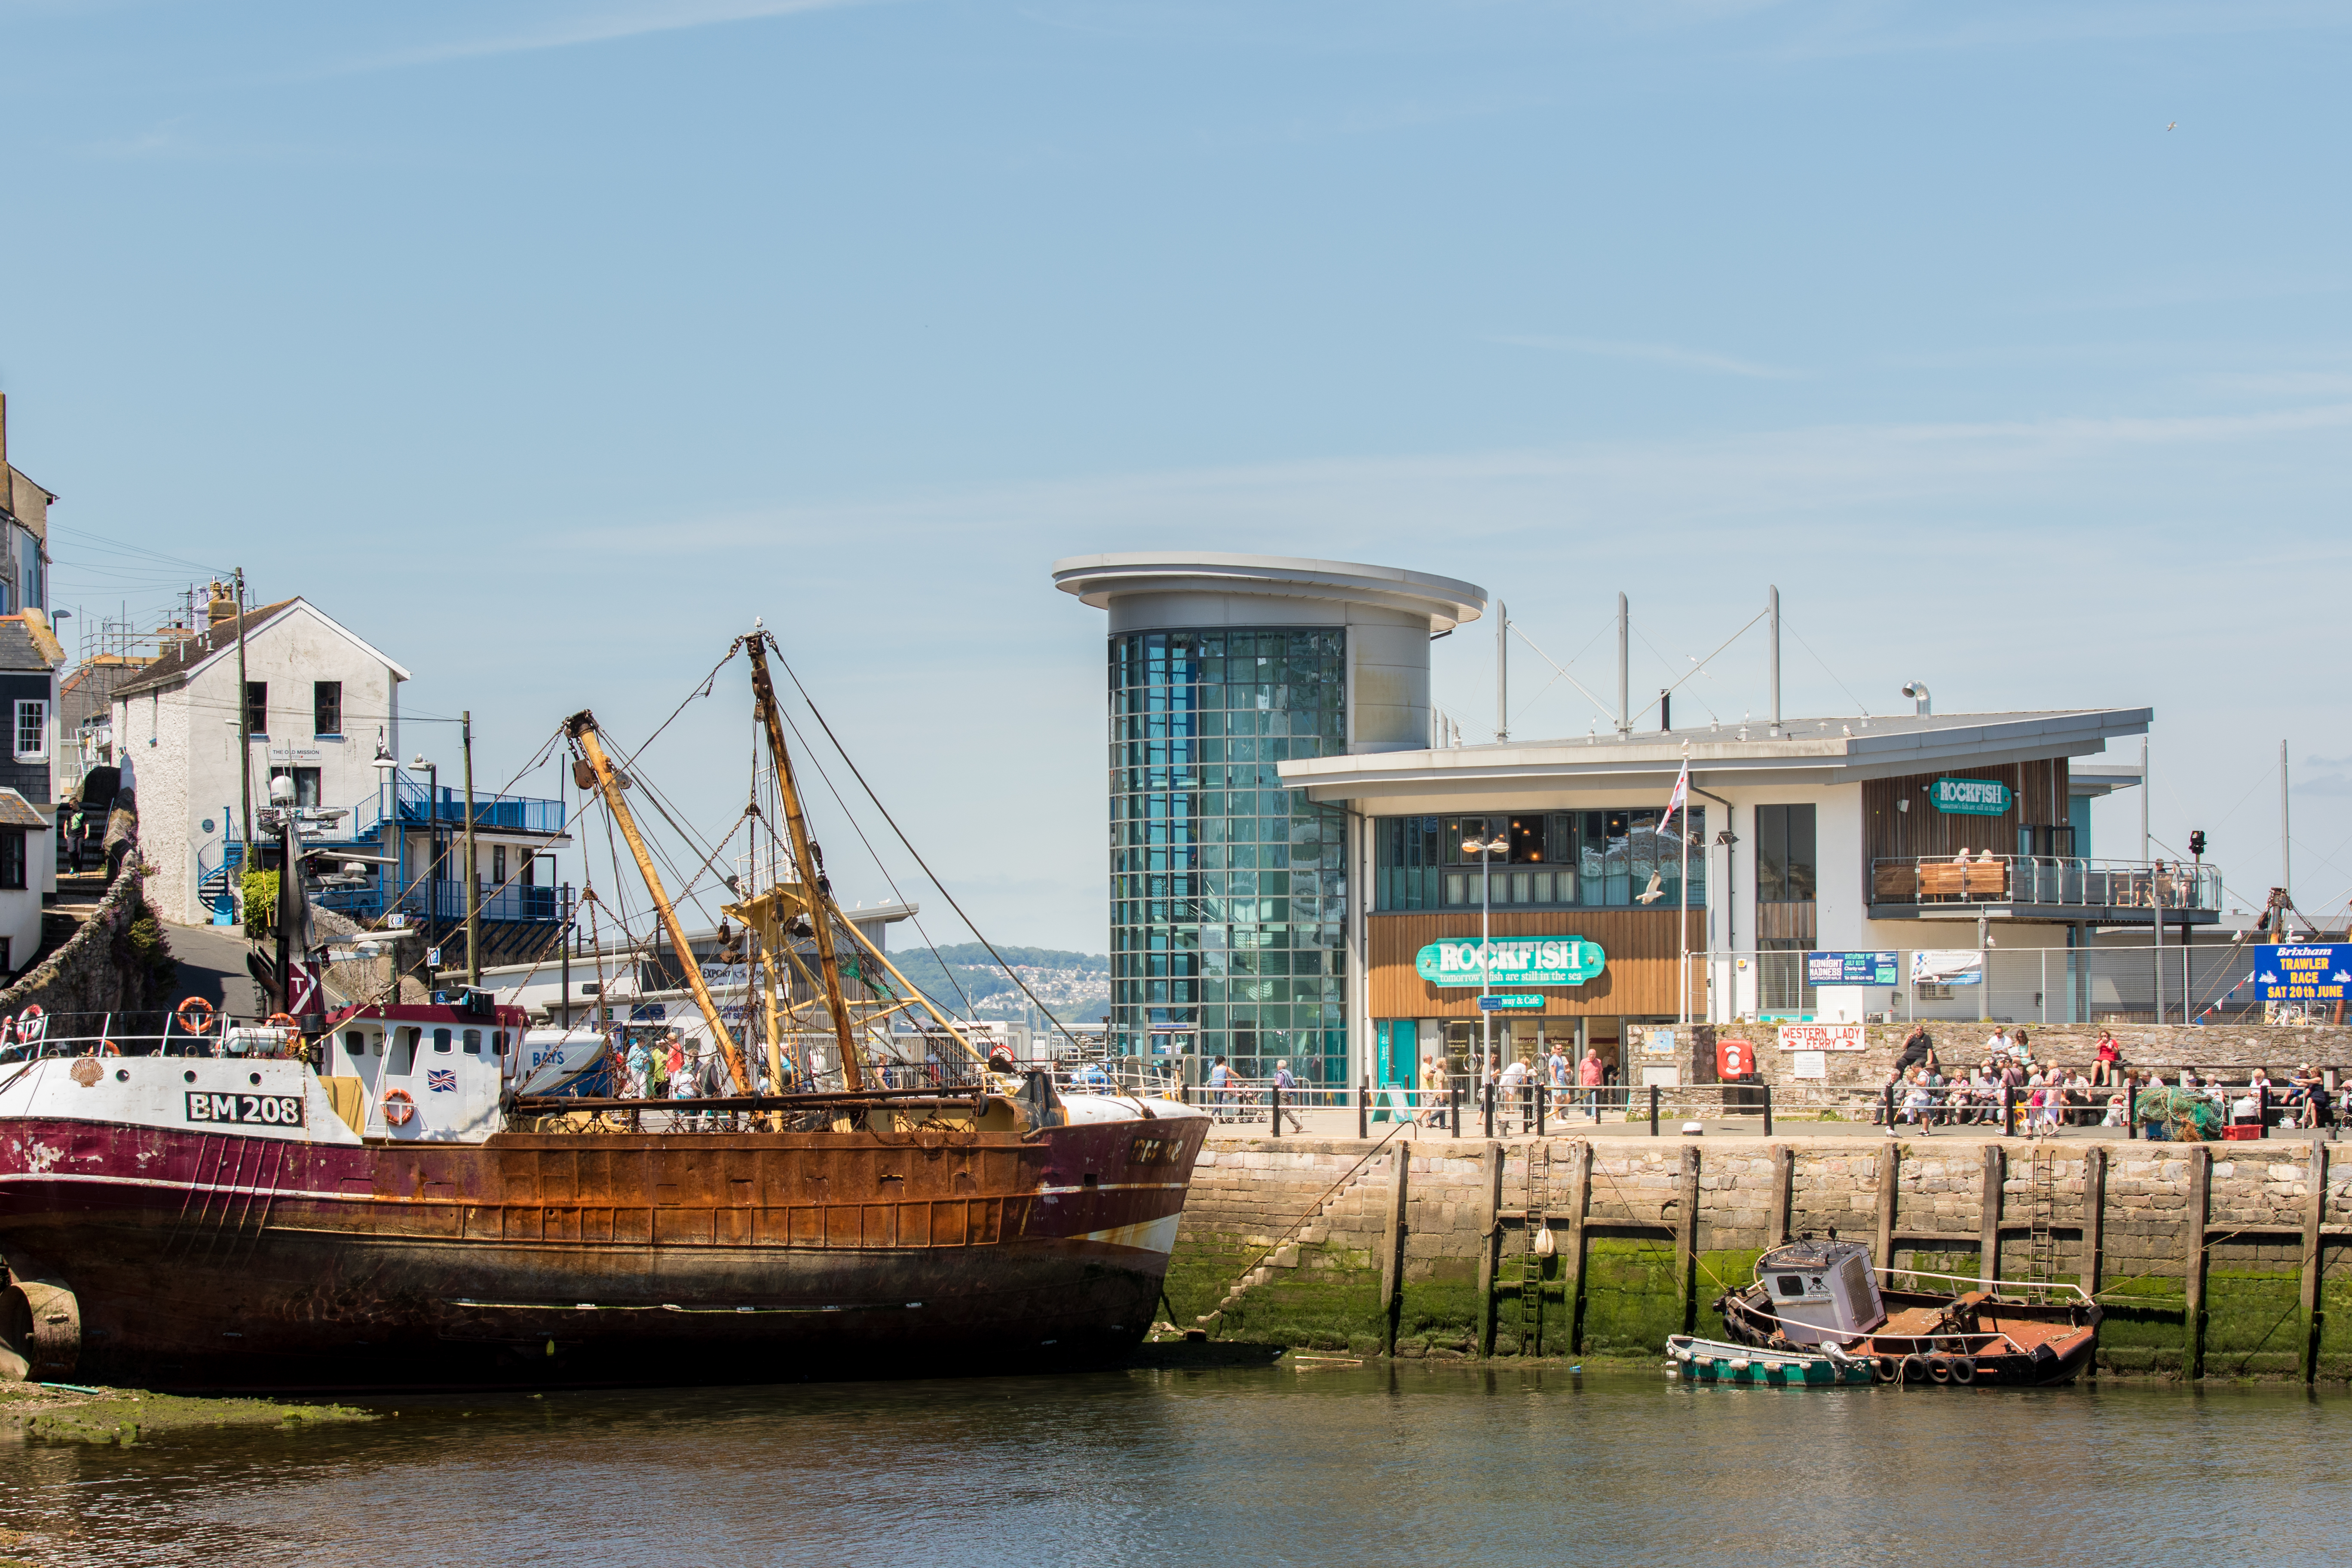 A photo of Rockfish Brixham building on a lovely day with low tide, there is a sea fishing boat in the photo.